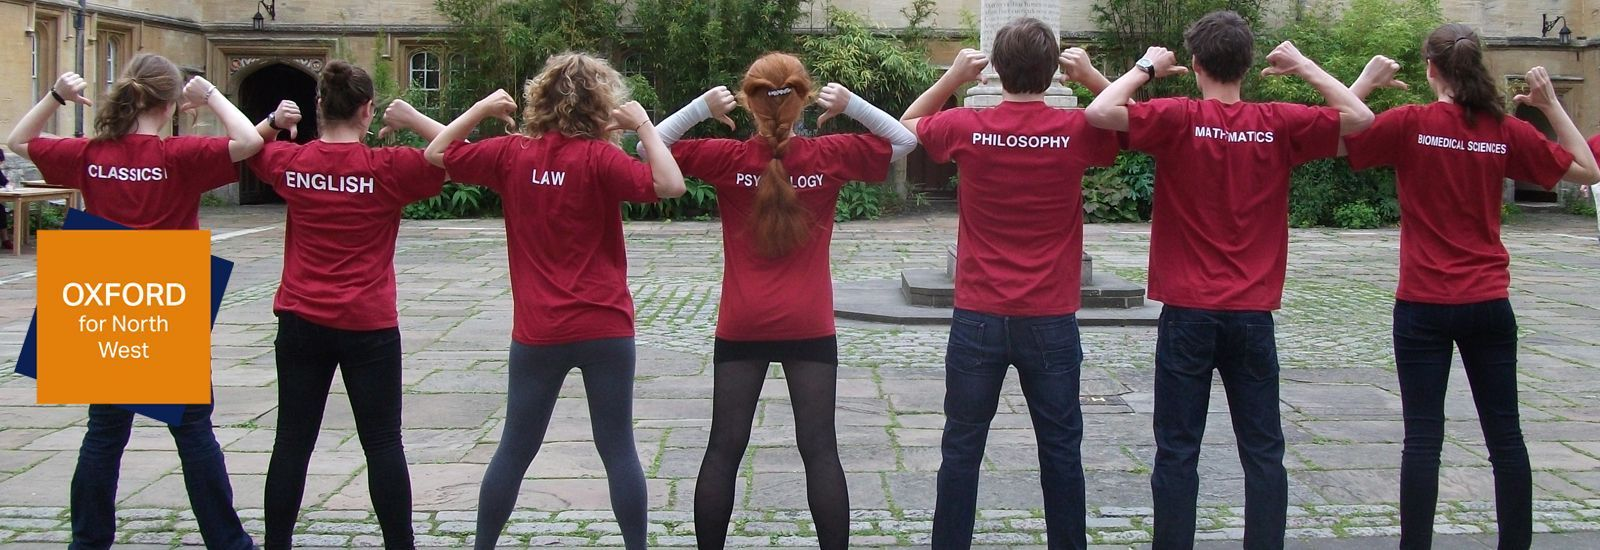 Seven students standing in a quad and pointing to the subjects written on the backs of their t-shirts.